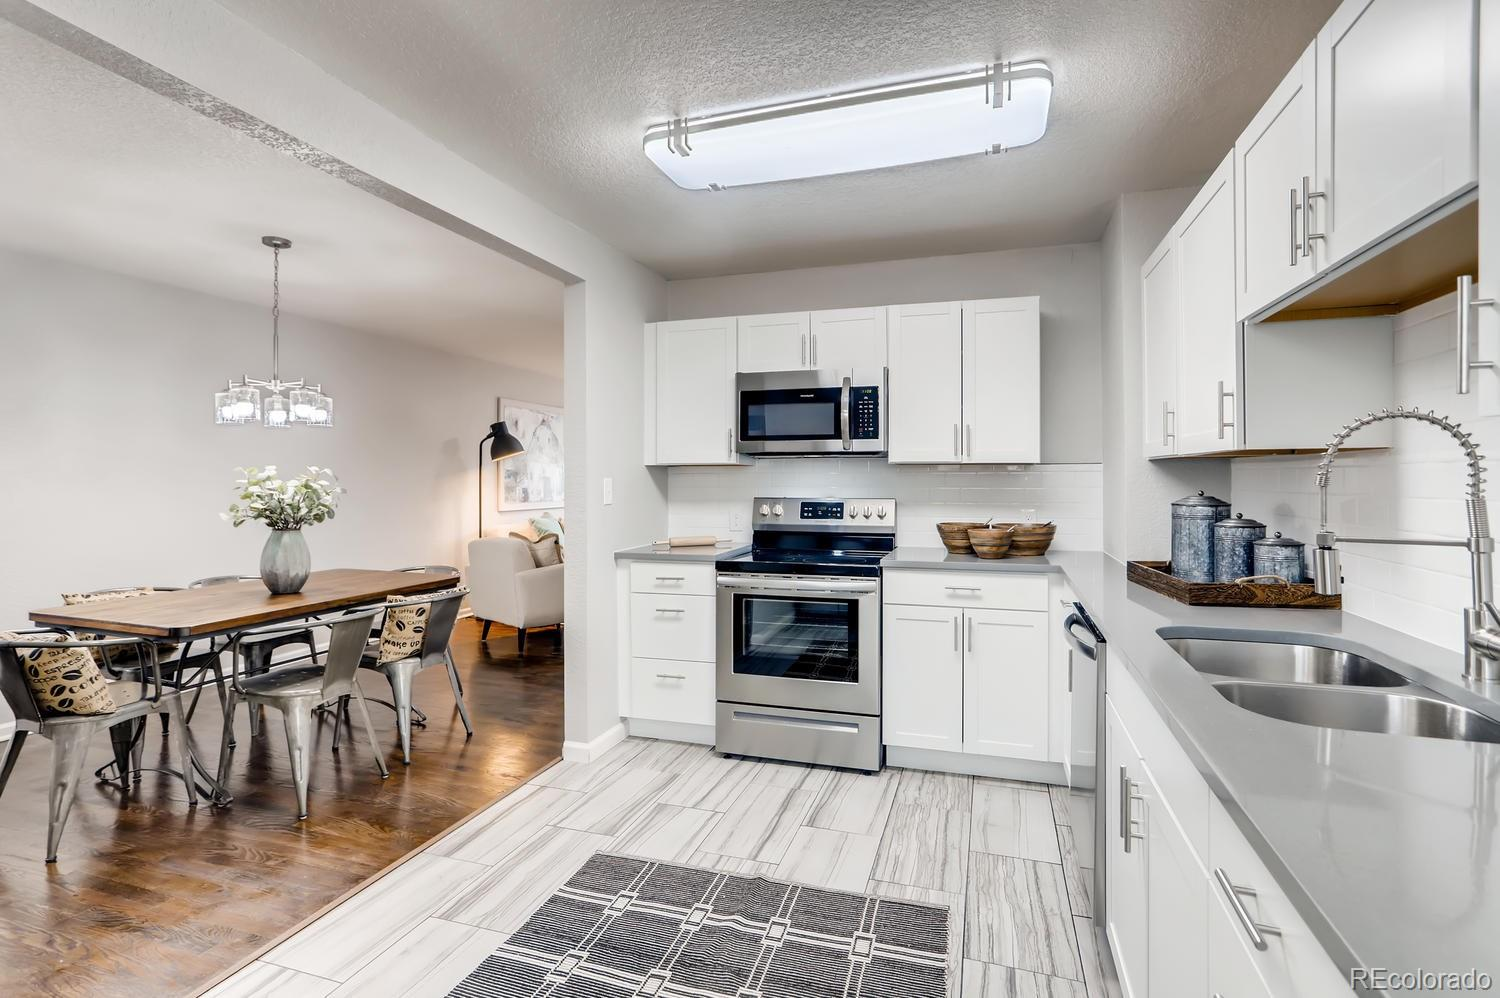 MLS# 2830054 - 11 - 8408 W 62nd Place, Arvada, CO 80004